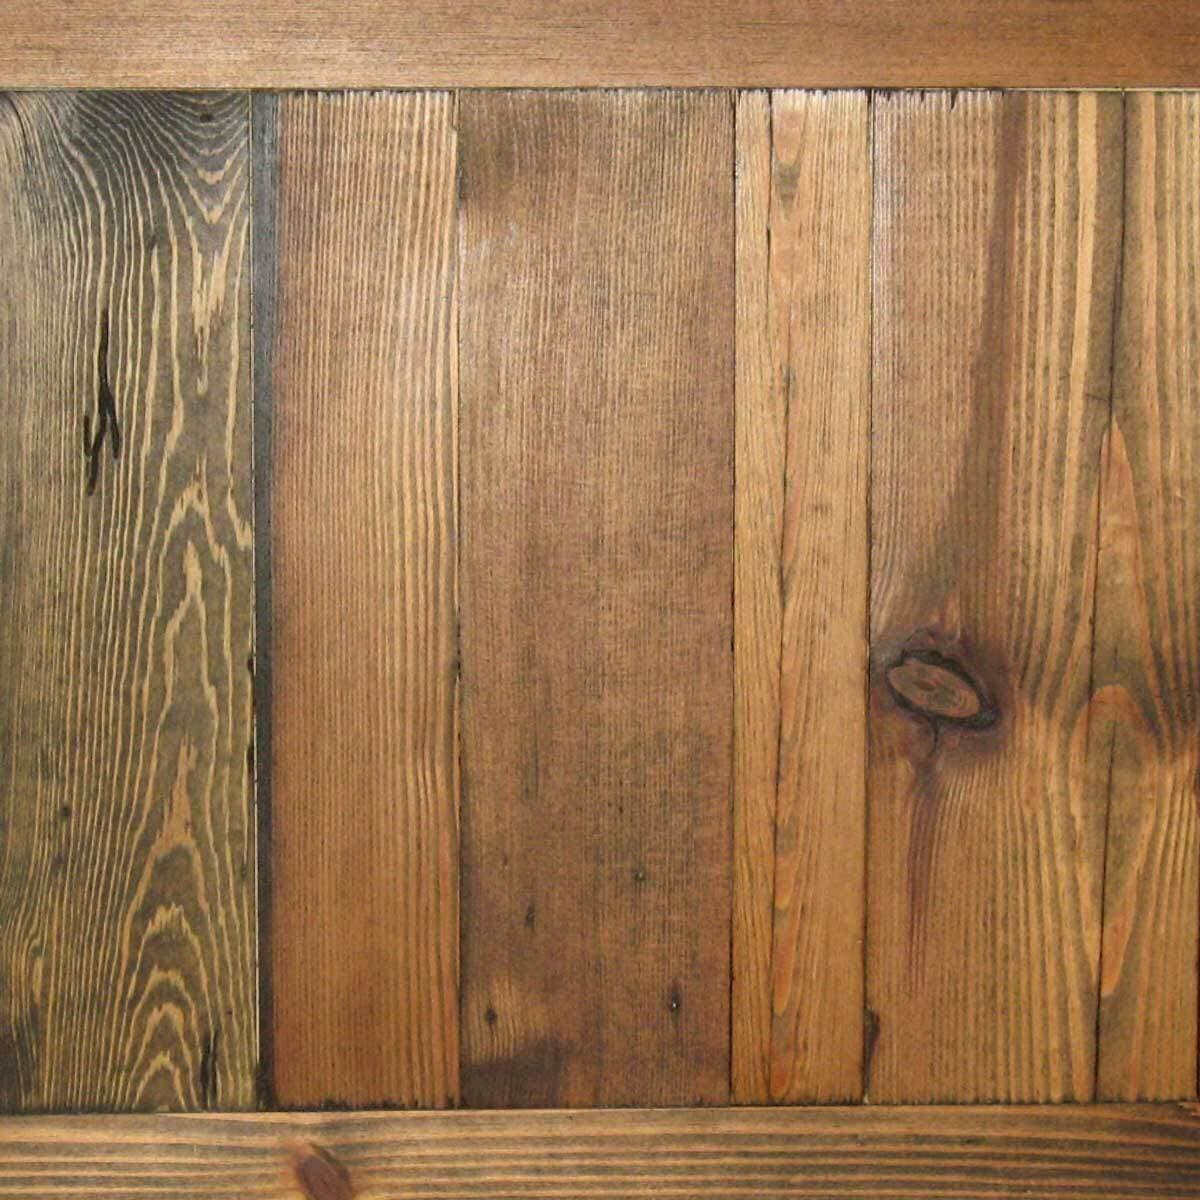 Brazil Brown Smooth Heart Pine Cabin wood finish by whole log lumber